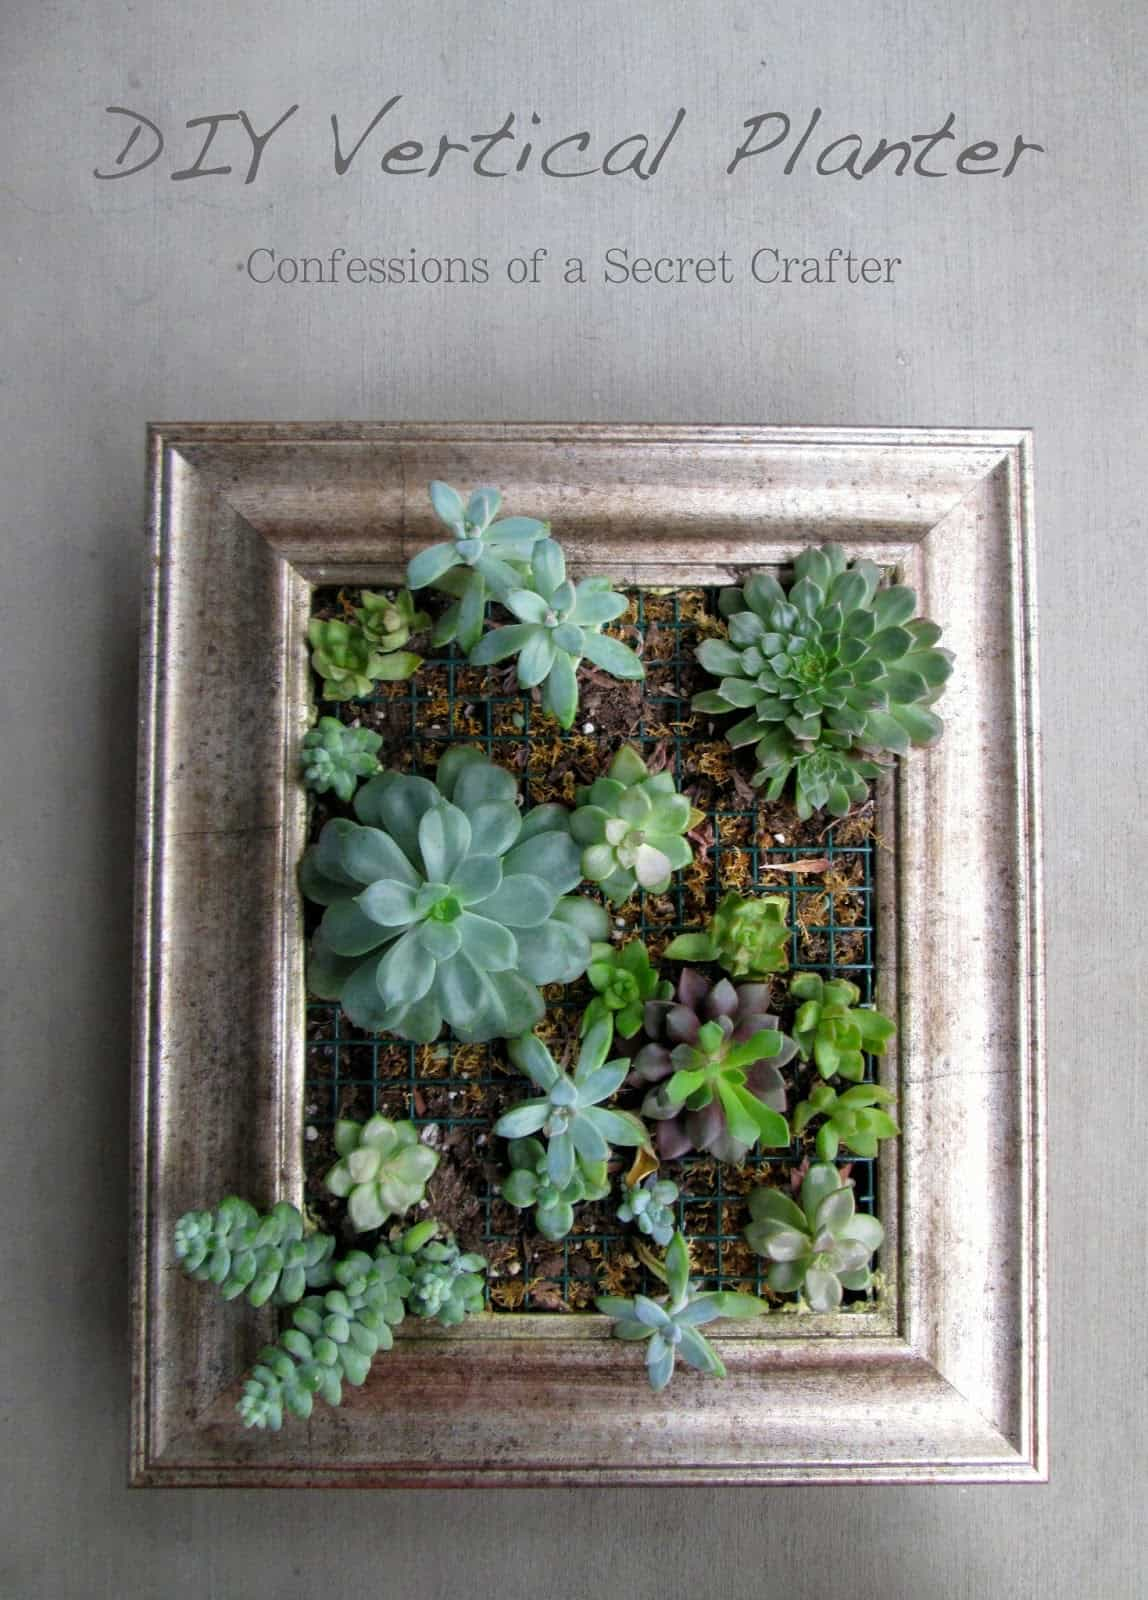 Repurpose a picture frame into a DIY vertical planter